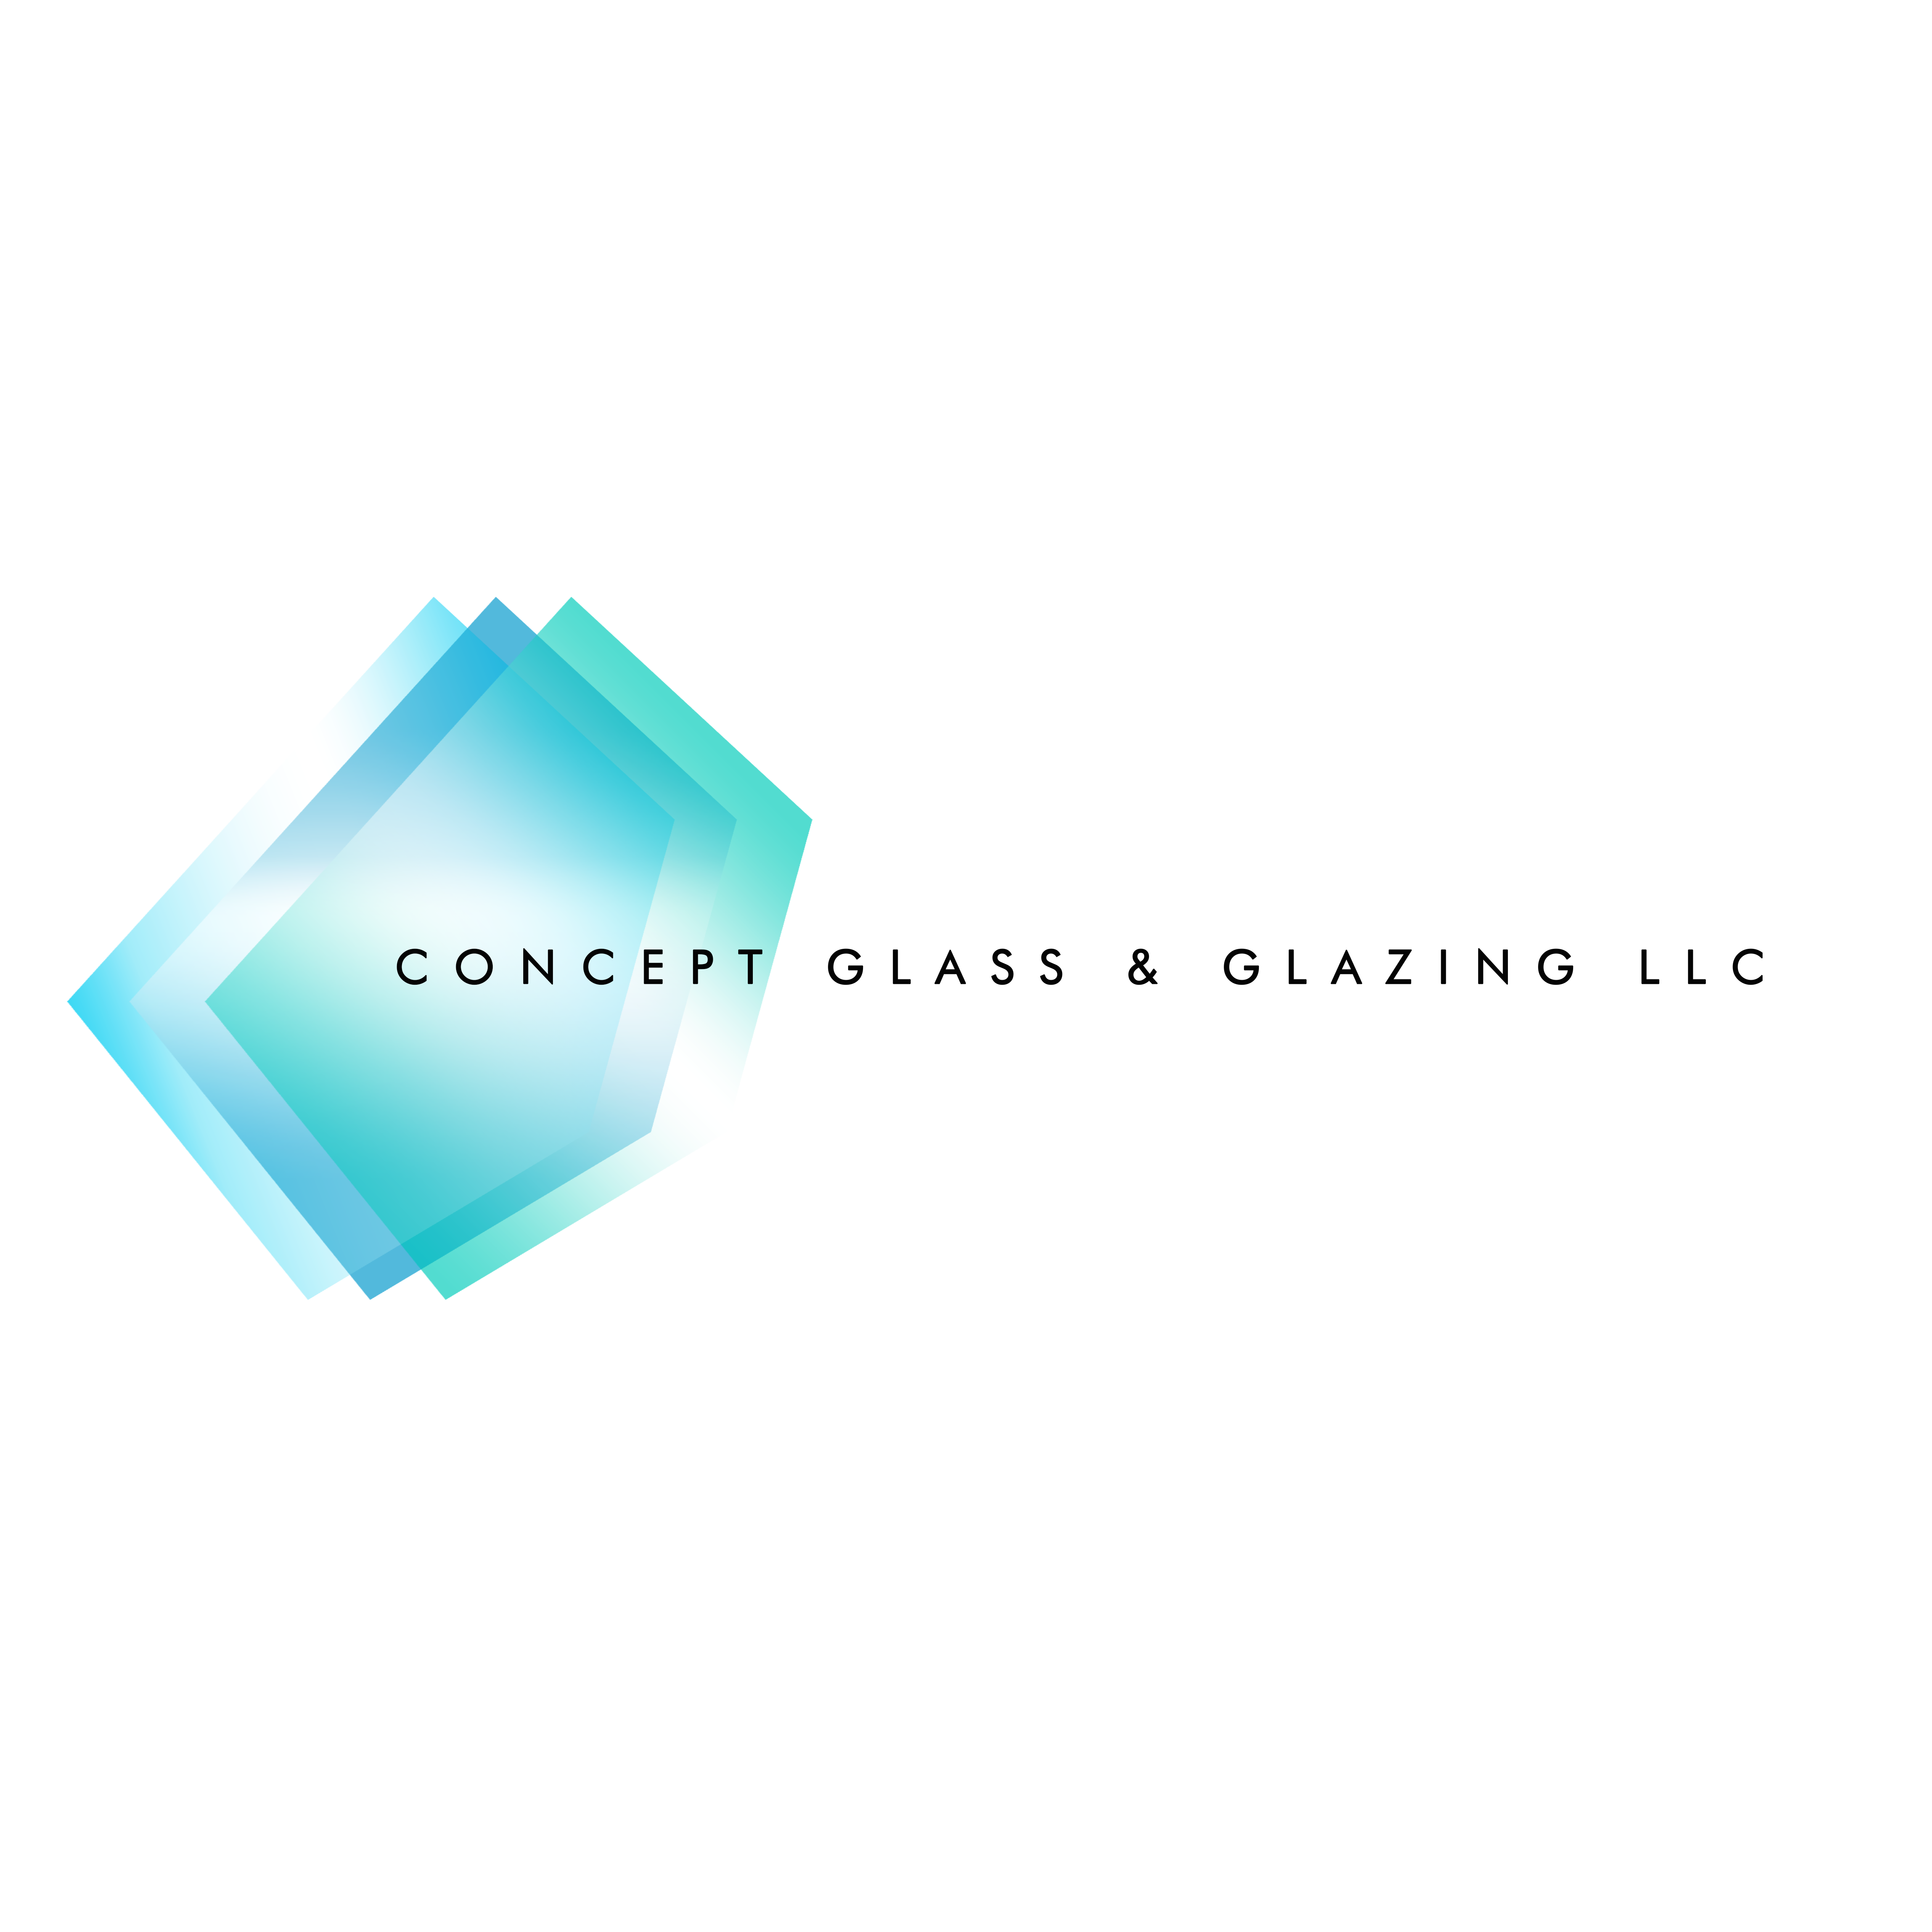 Concept Glass and Glazing LLC